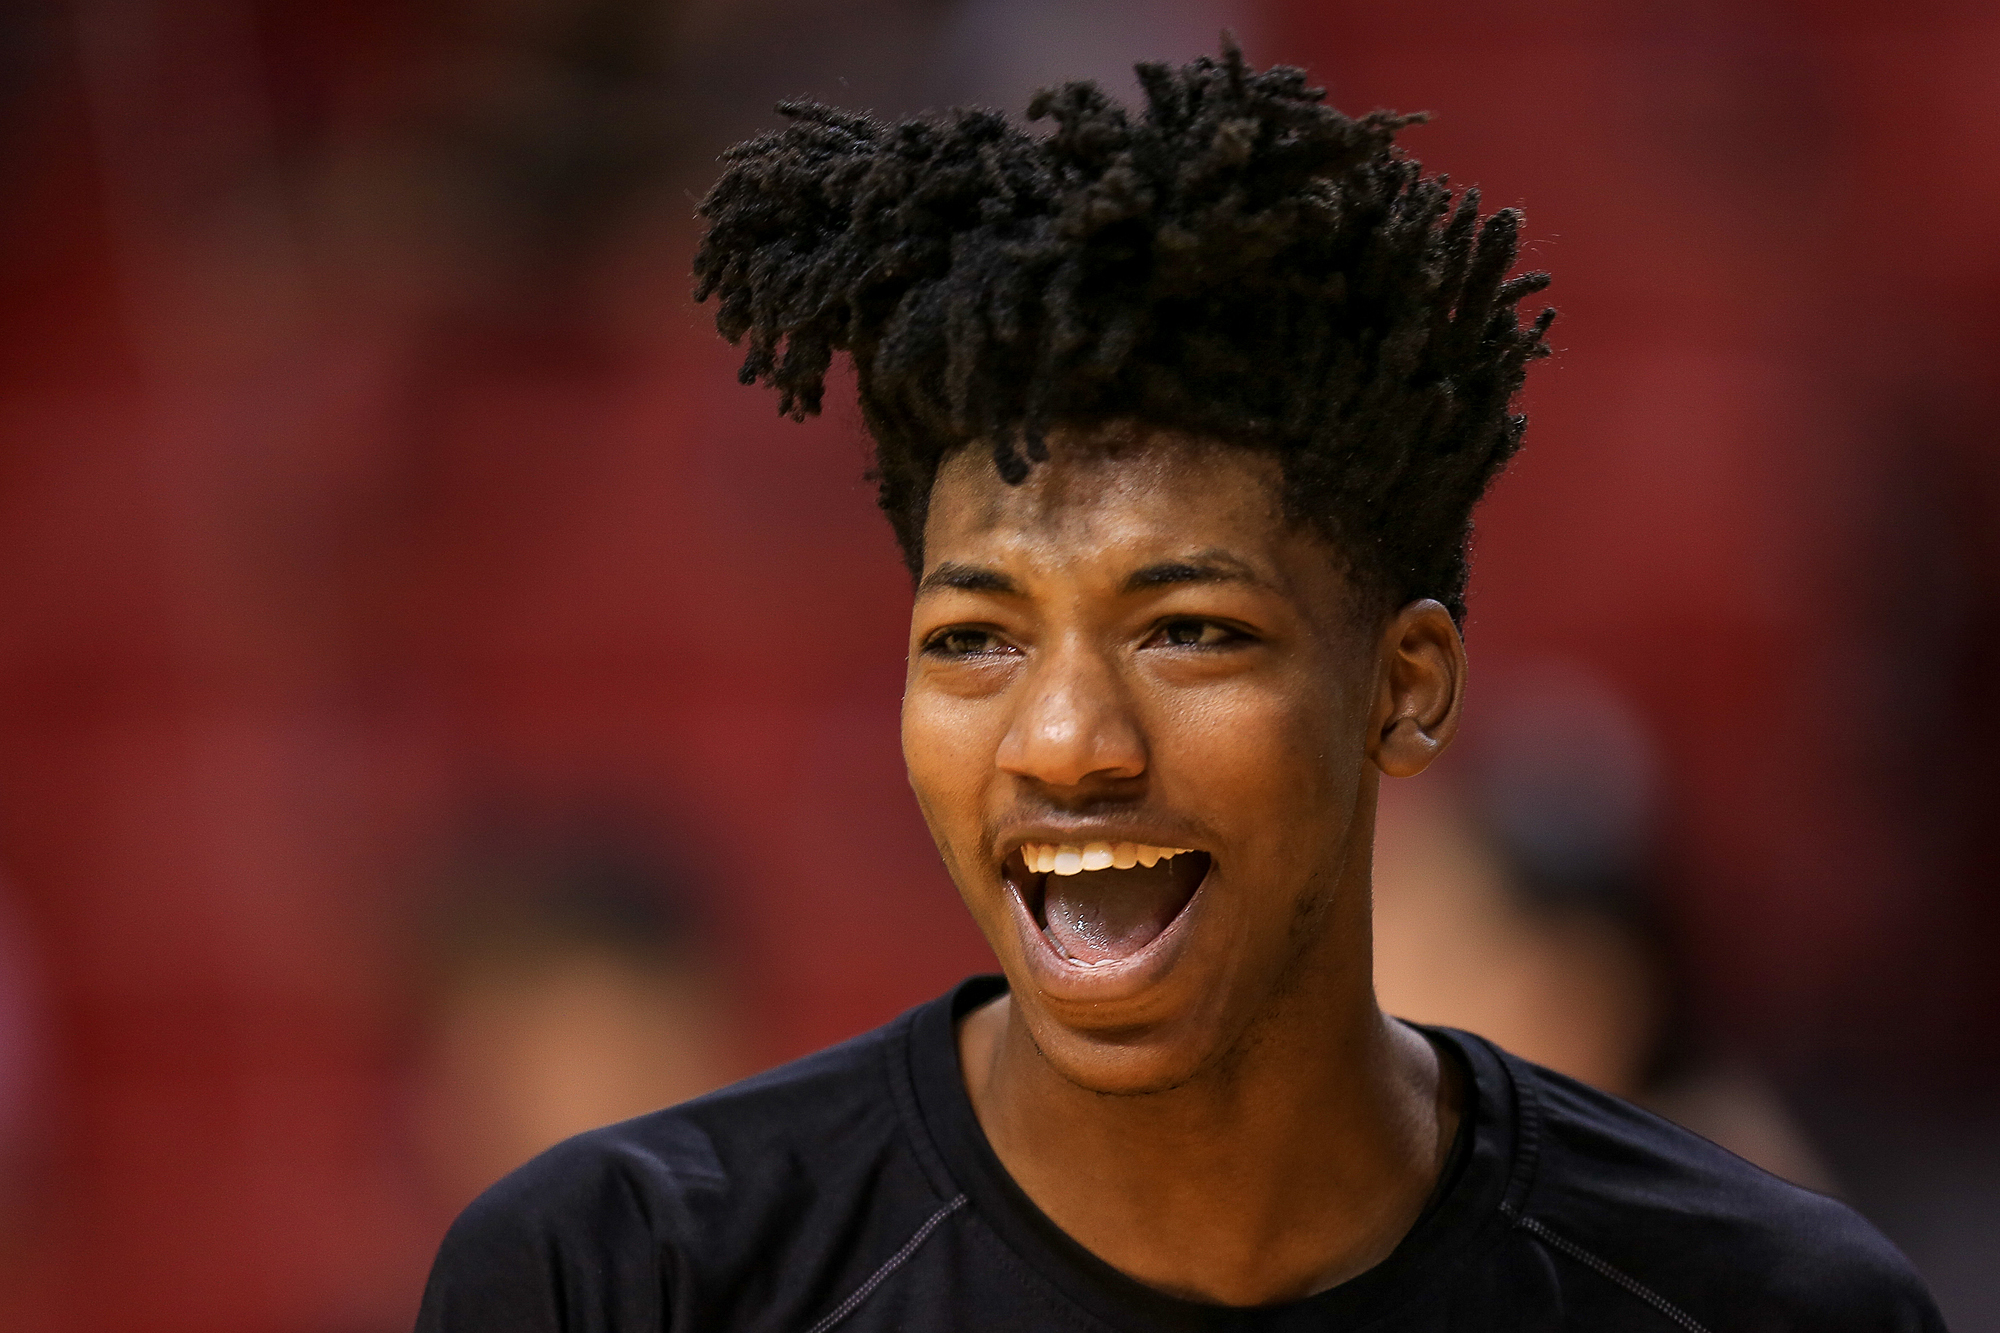 Elfrid Payton #4 of the Orlando Magic looks on before the game against the Miami Heat at the American Airlines Arena on April 10, 2016 in Miami, Florida.